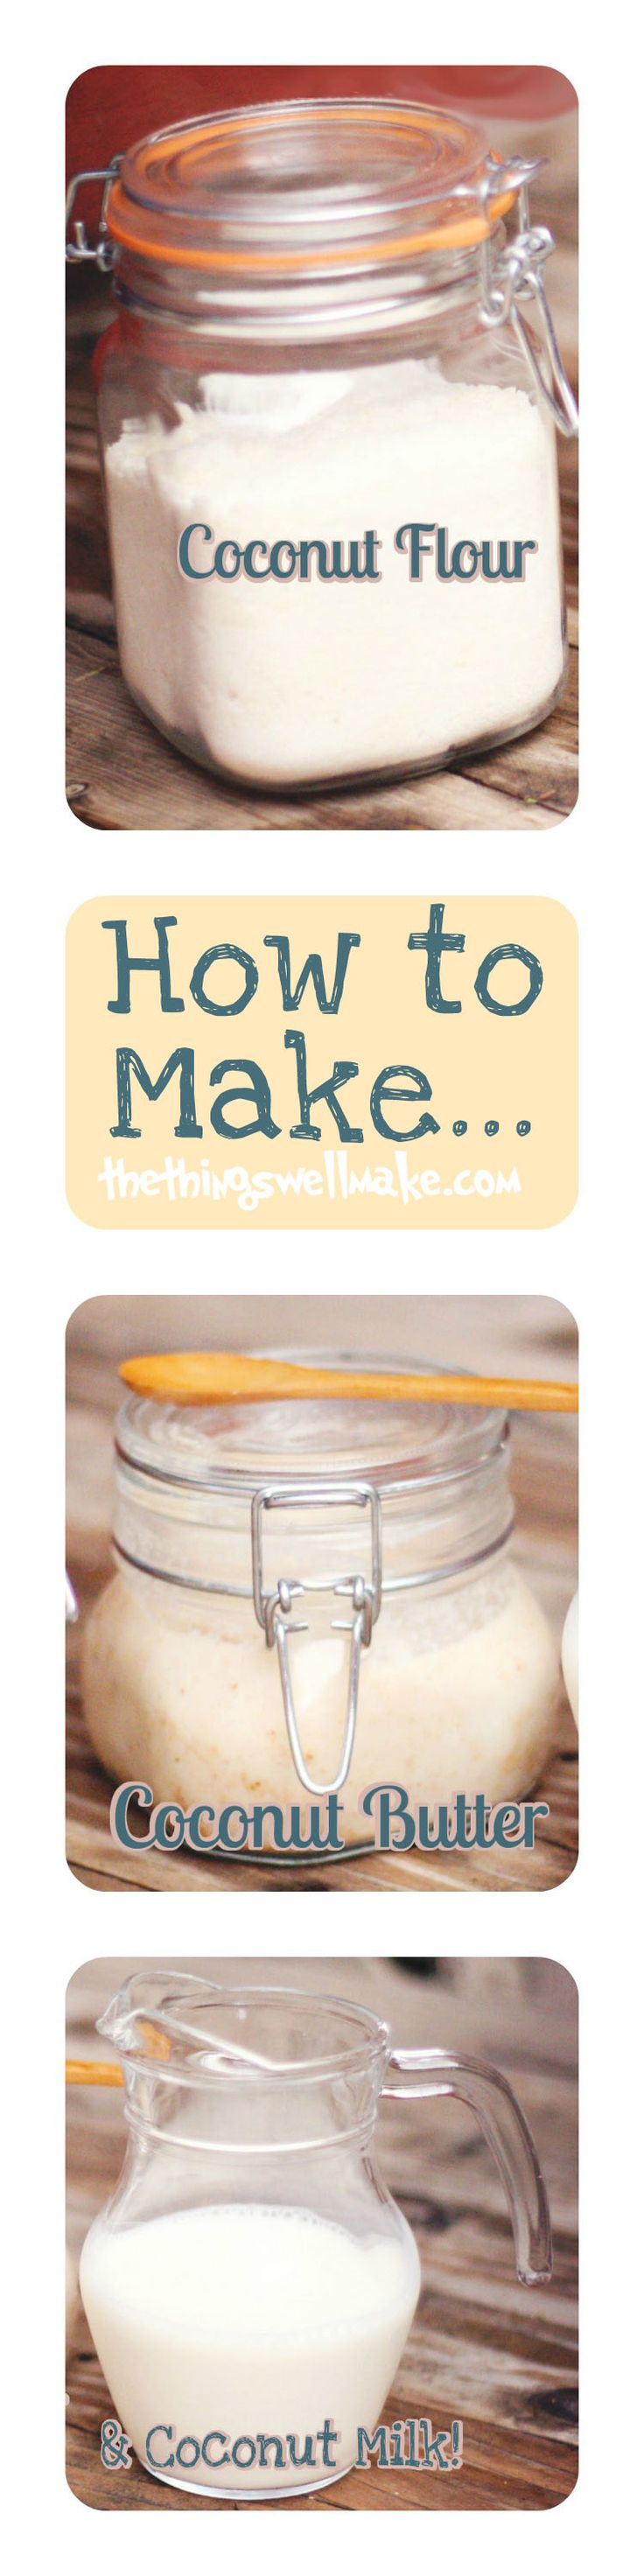 How to easily make your own Coconut Milk, Coconut Butter, and Coconut Flour…